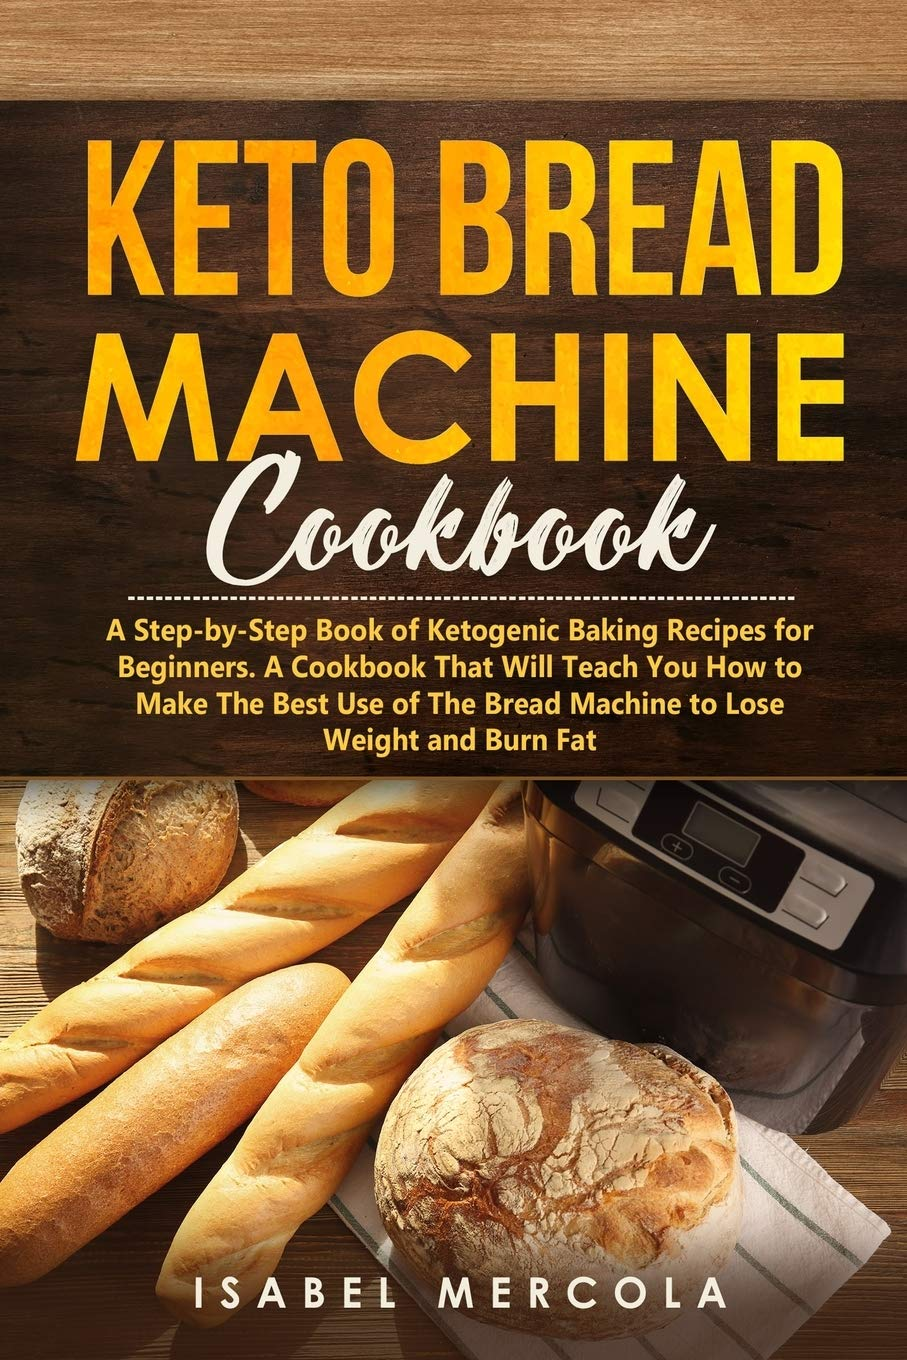 Keto Bread Machine Cookbook A Step By Step Book Of Ketogenic Baking Recipes For Beginners A Cookbook That Will Teach You How To Make The Best Use Of The Bread Machine To Lose Weight